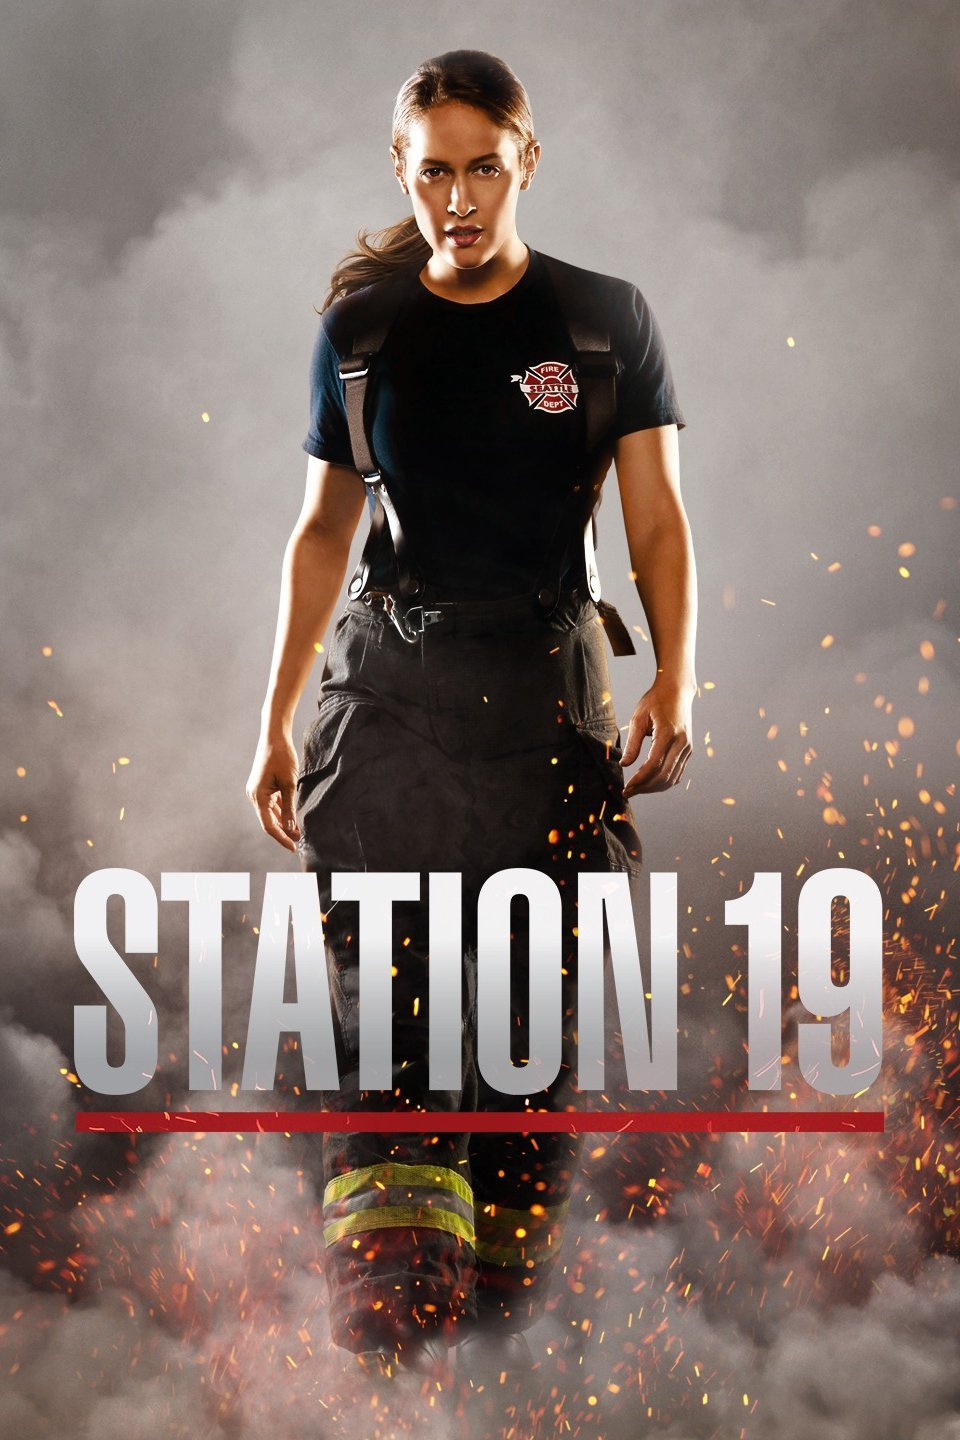 Station 19 Season 1 Episode 10 Download WEBRip 480p 720p